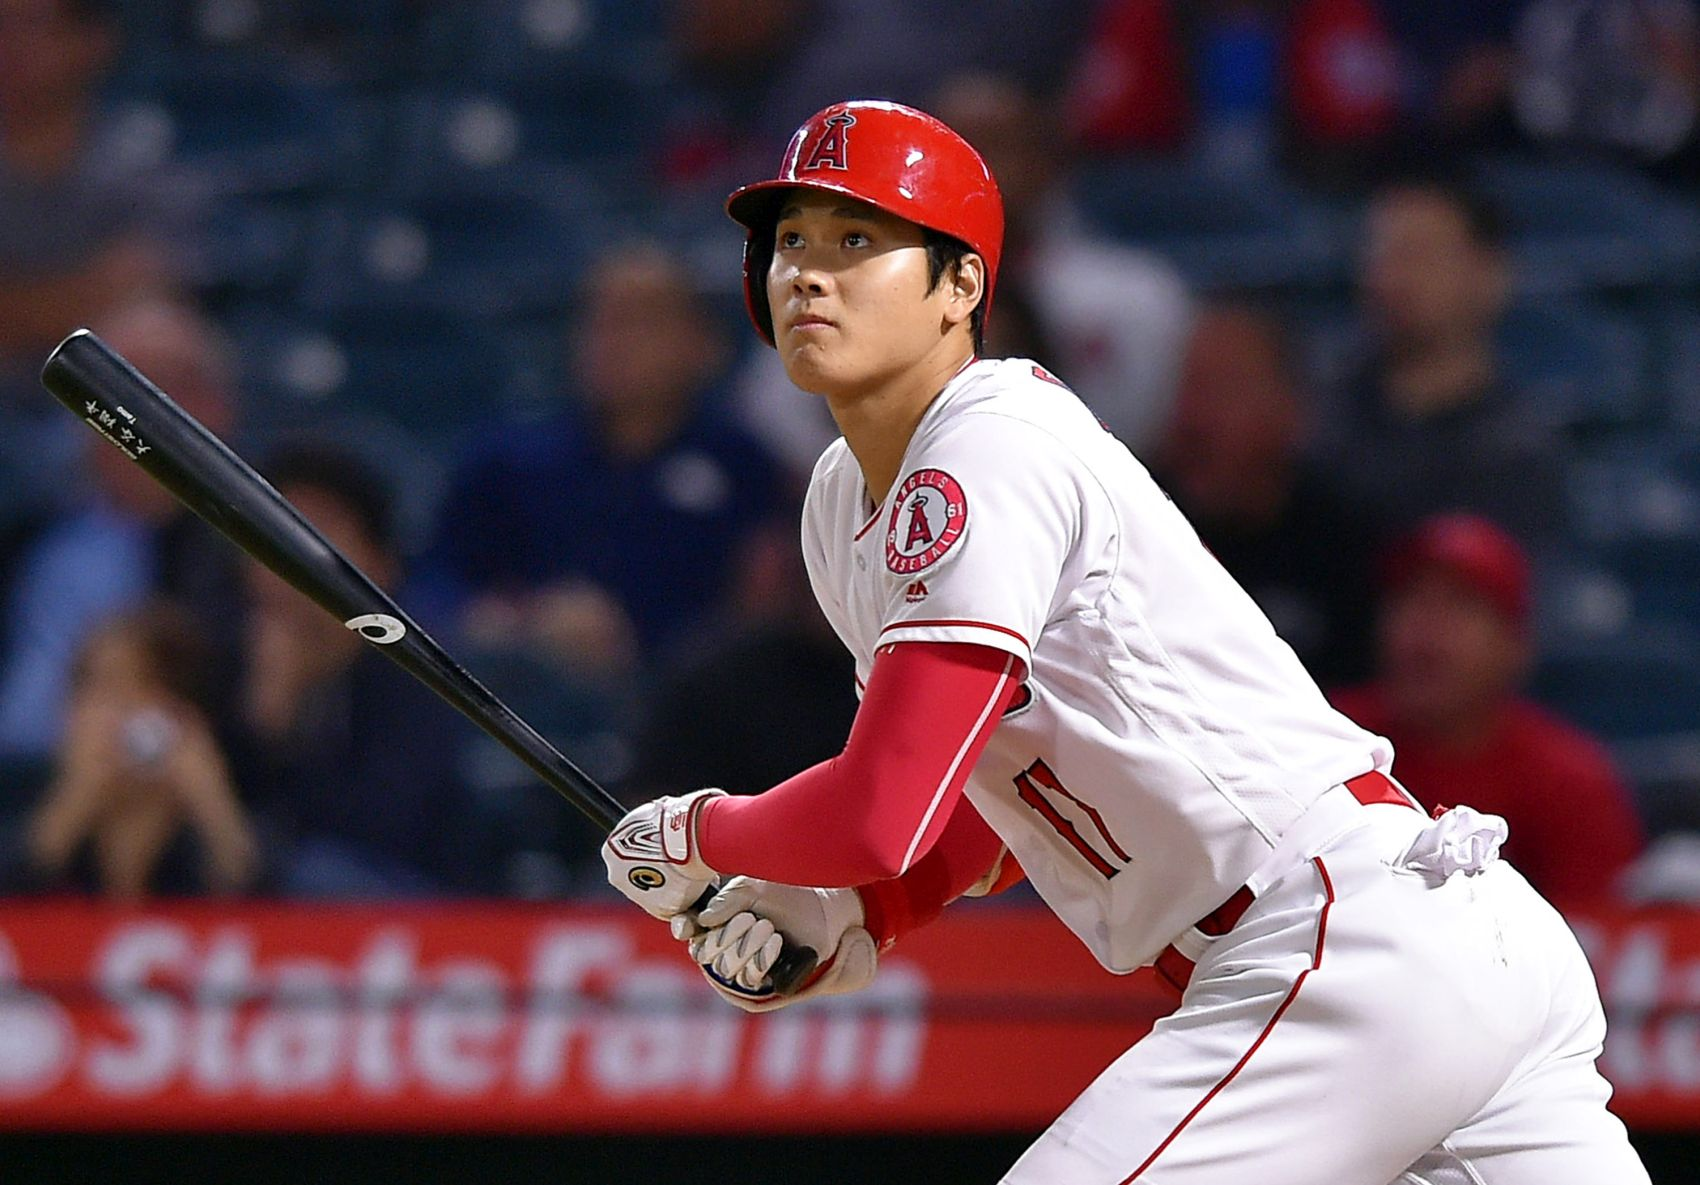 Shohei Ohtani: American League Rookie of the Year Back in Japan to Tell His Story